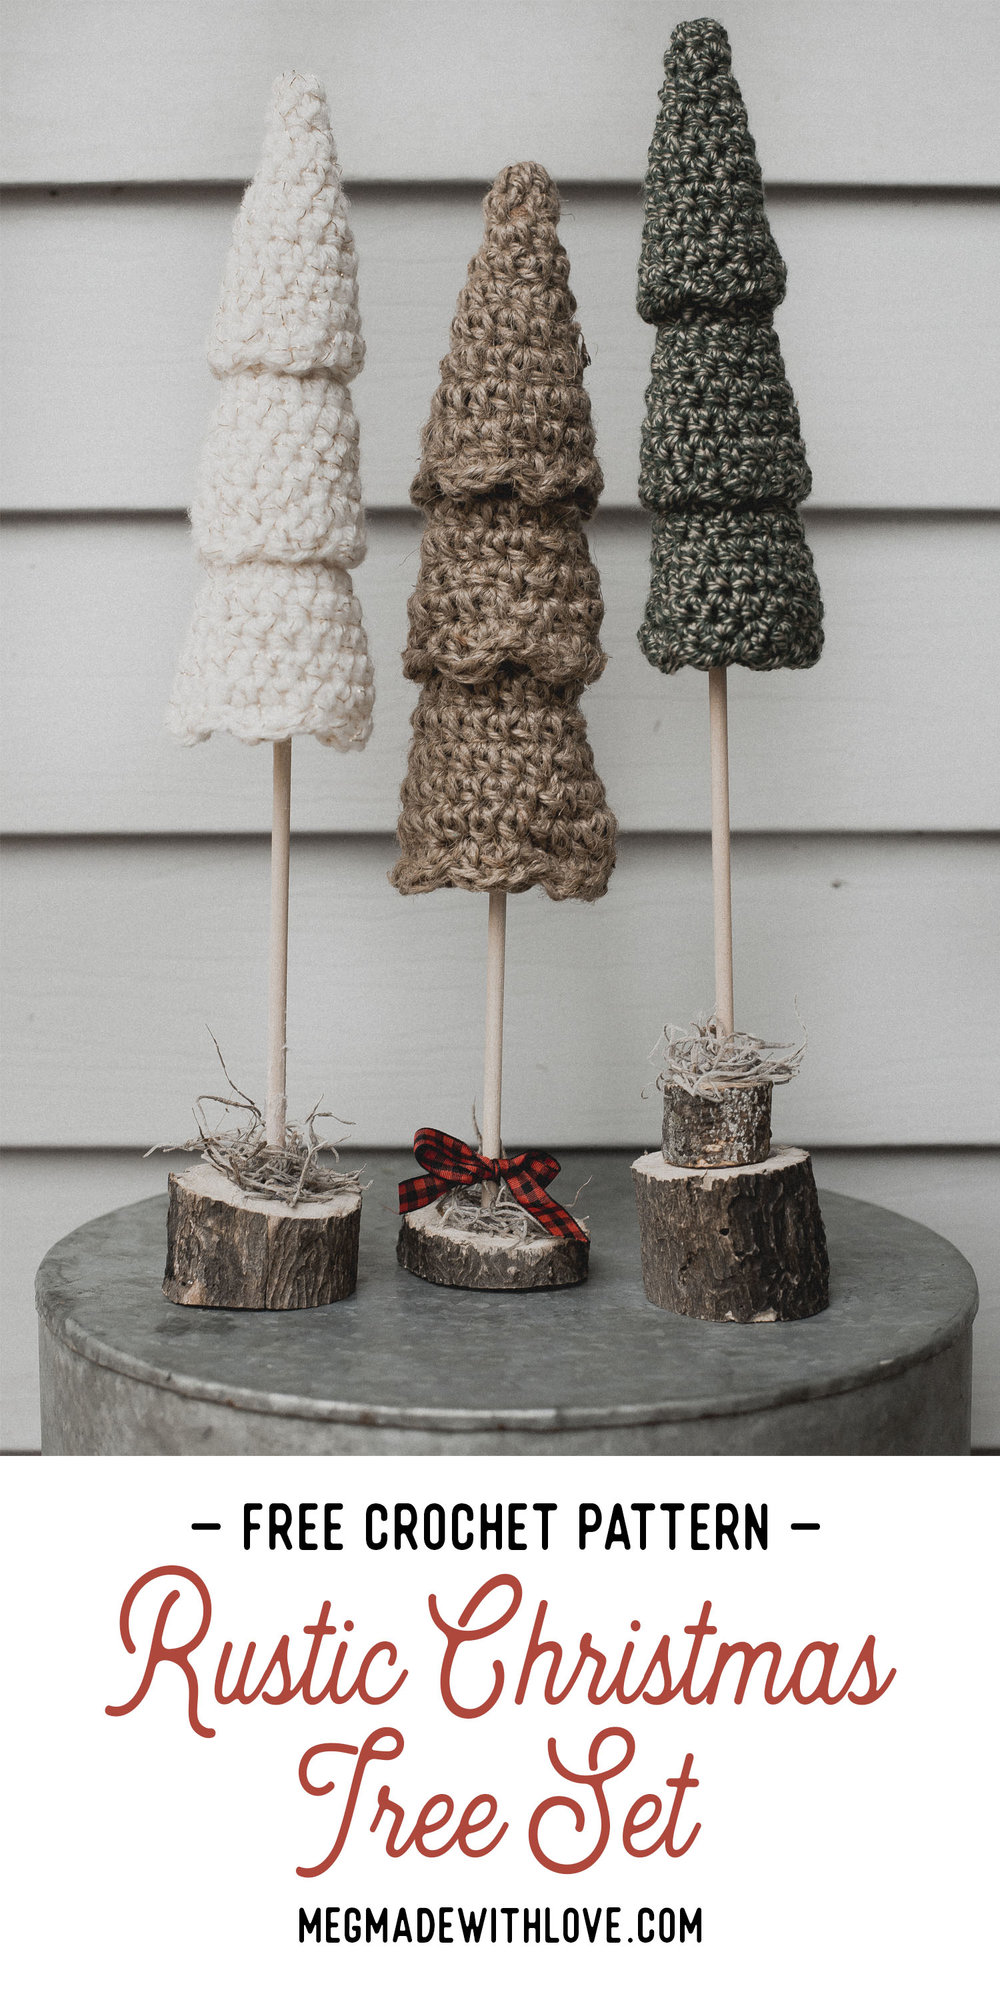 Crochet Pattern - Rustic Christmas Tree - Megmade with Love